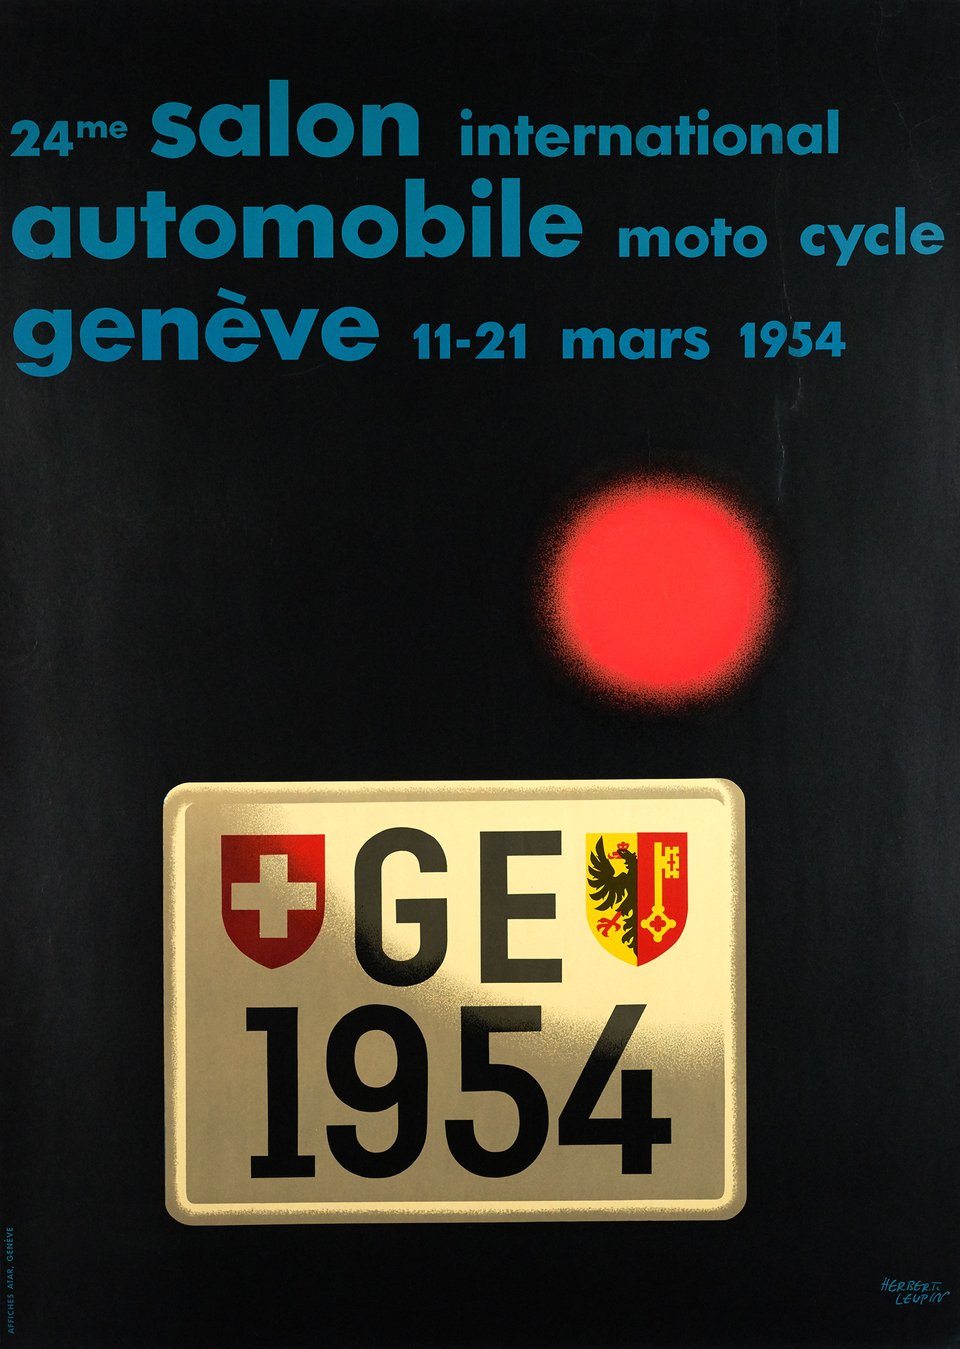 24me Salon Internationale automobile moto cycle Genève – Vintage poster – Herbert LEUPIN – 1954